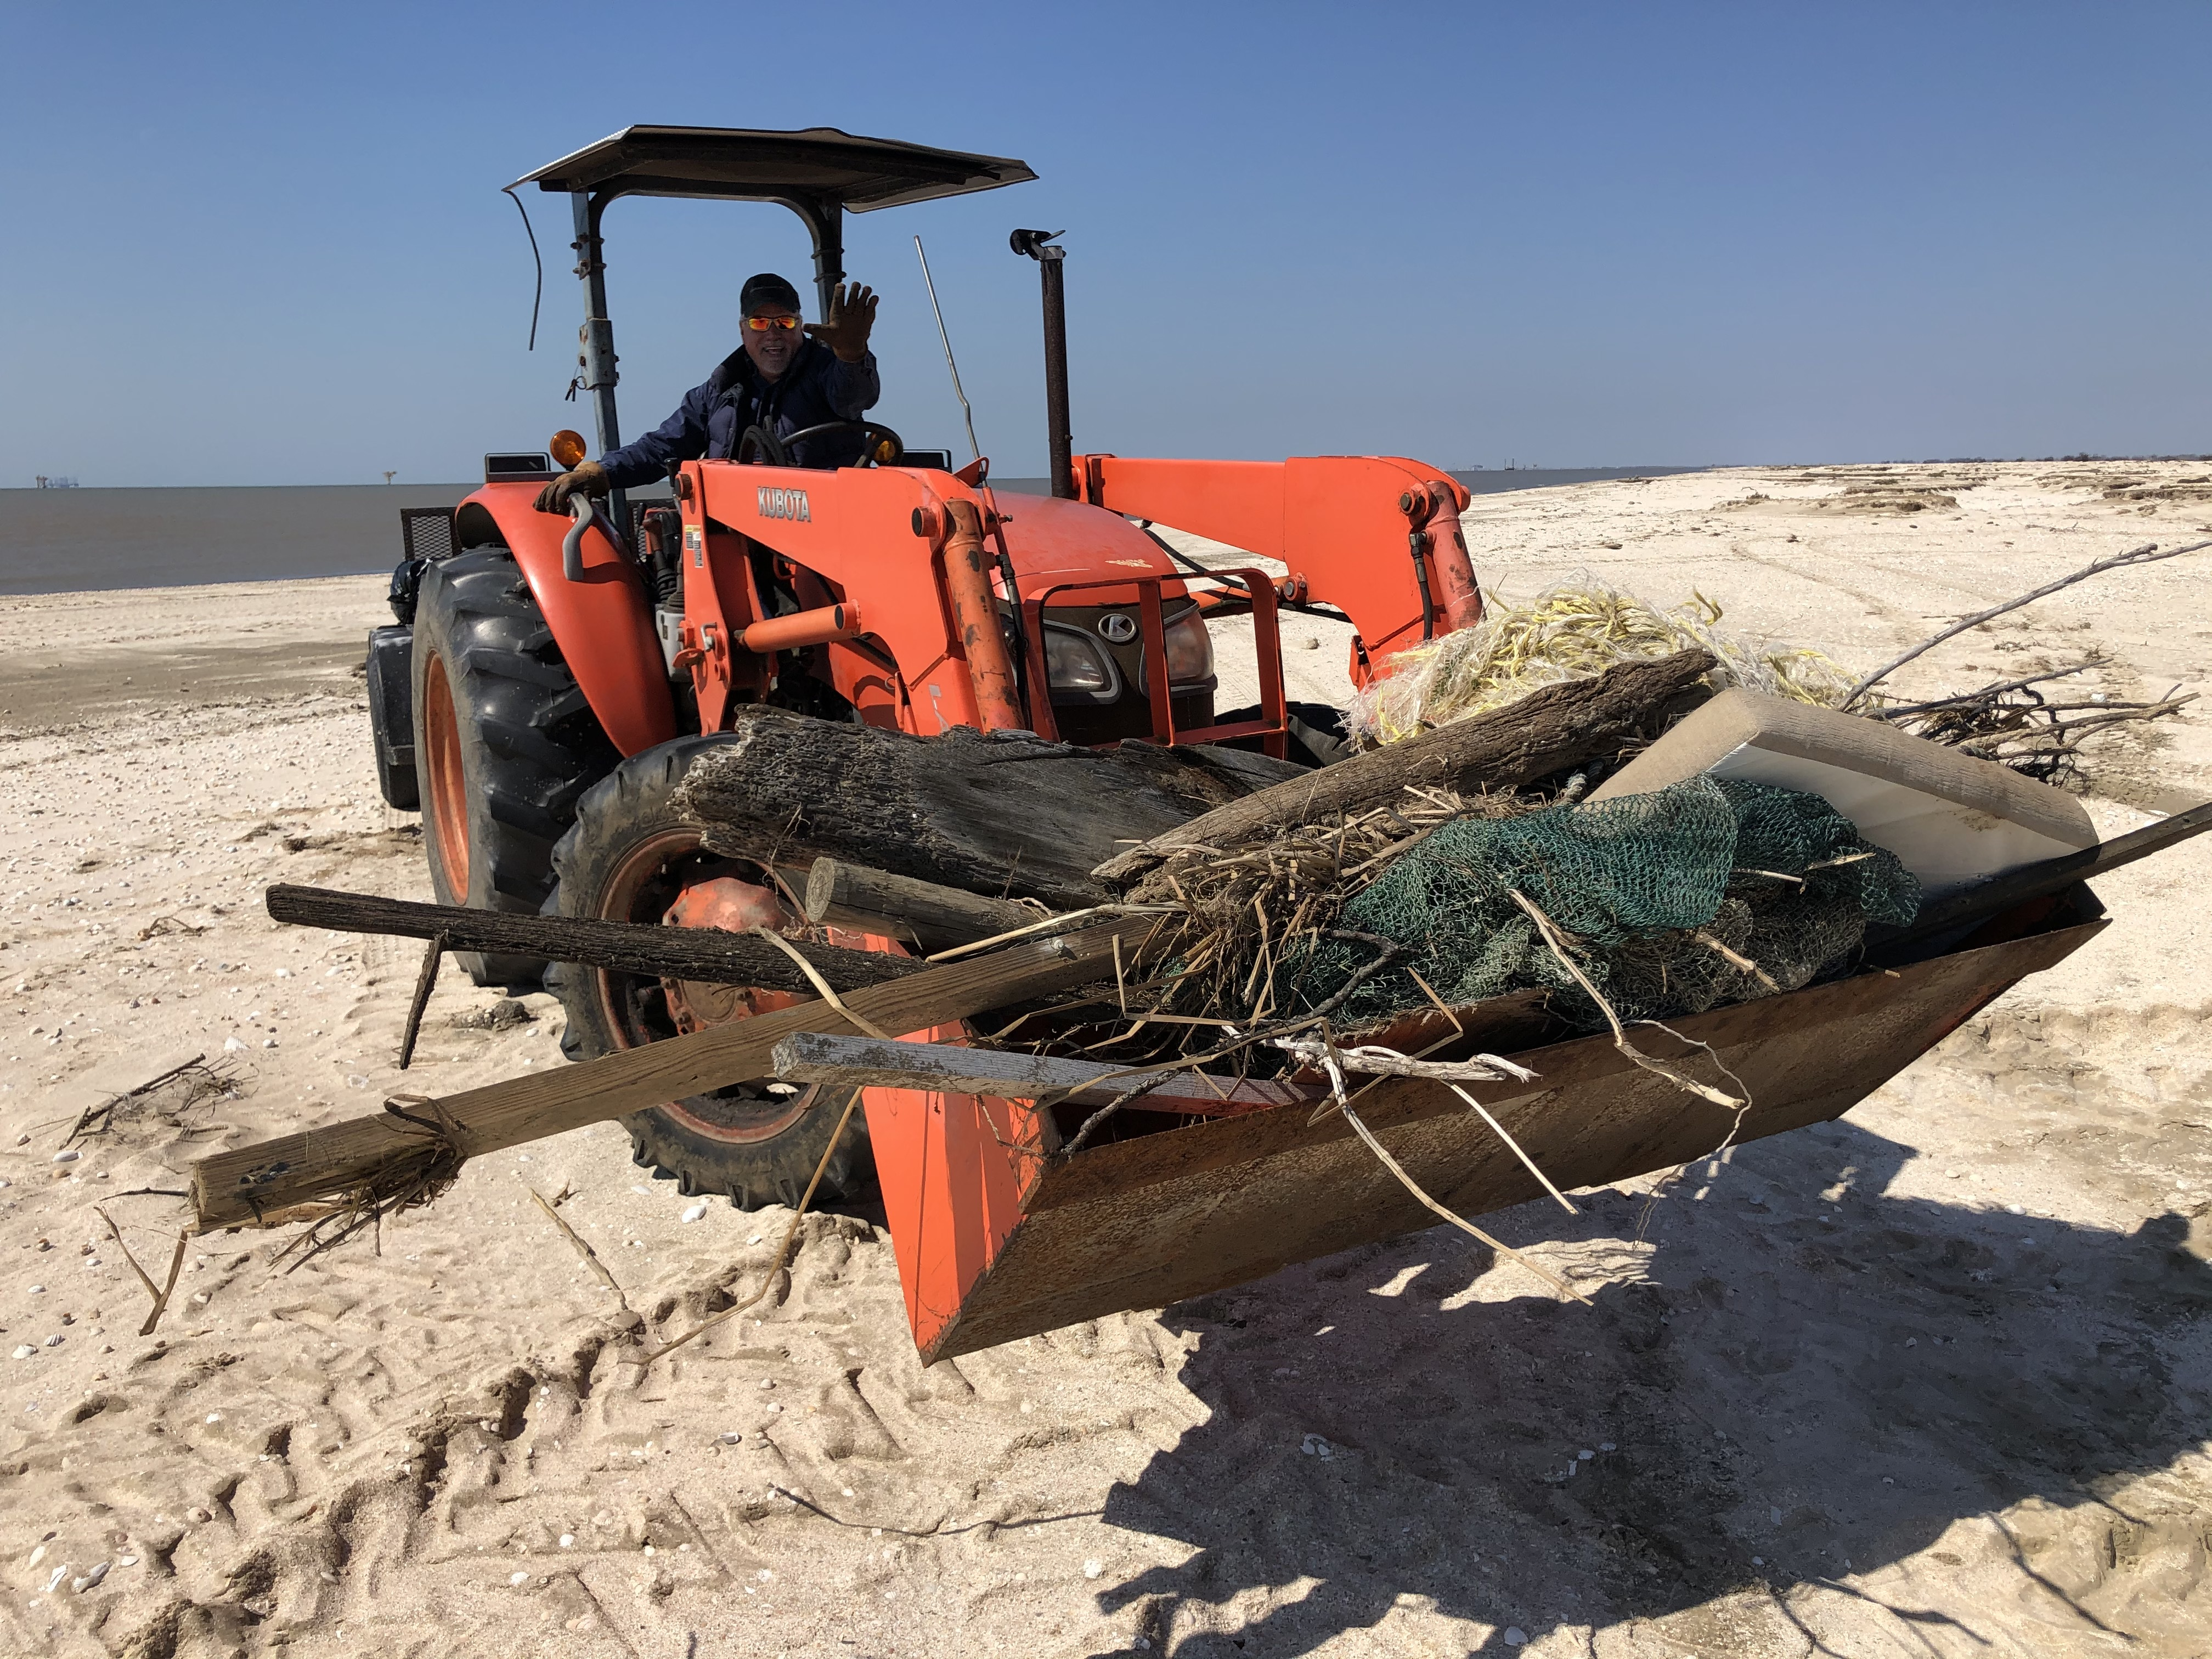 Cameron Parish President and Police Juror for District 5, Scott Trahan, removes large debris from Rutherford Beach with the help of his tractor. Katie Barnes/Audubon Louisiana